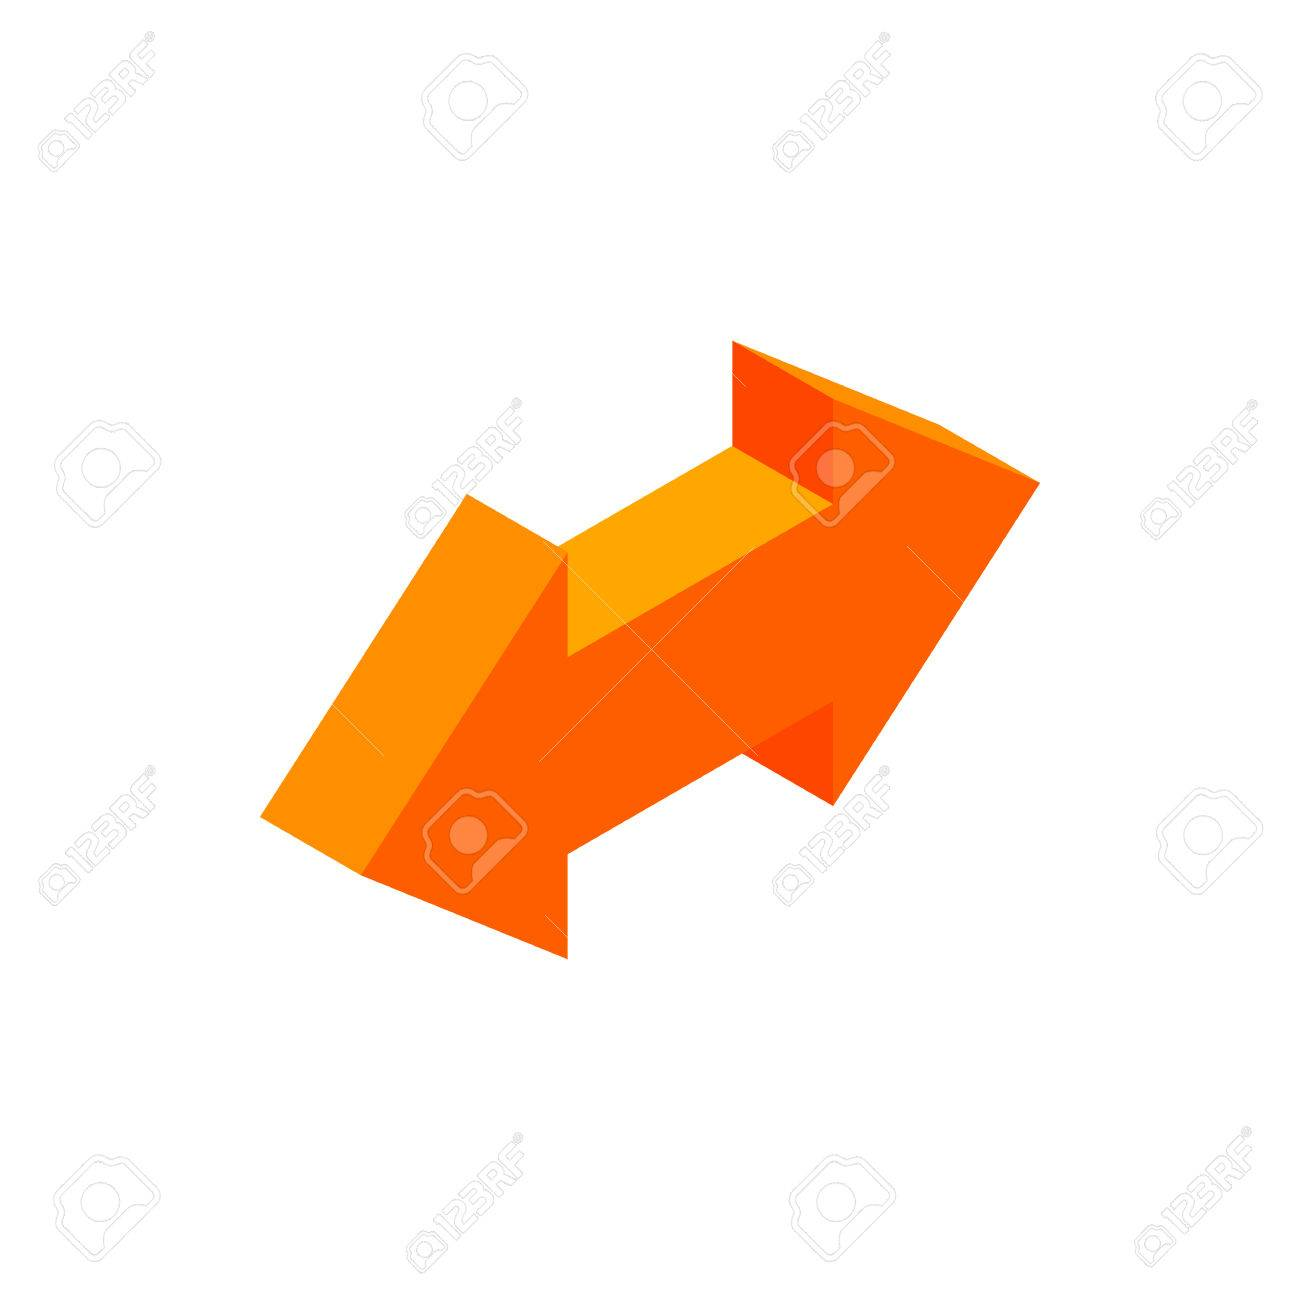 Two Way Arrow Isometric 3d Icon On A White Background Royalty Free